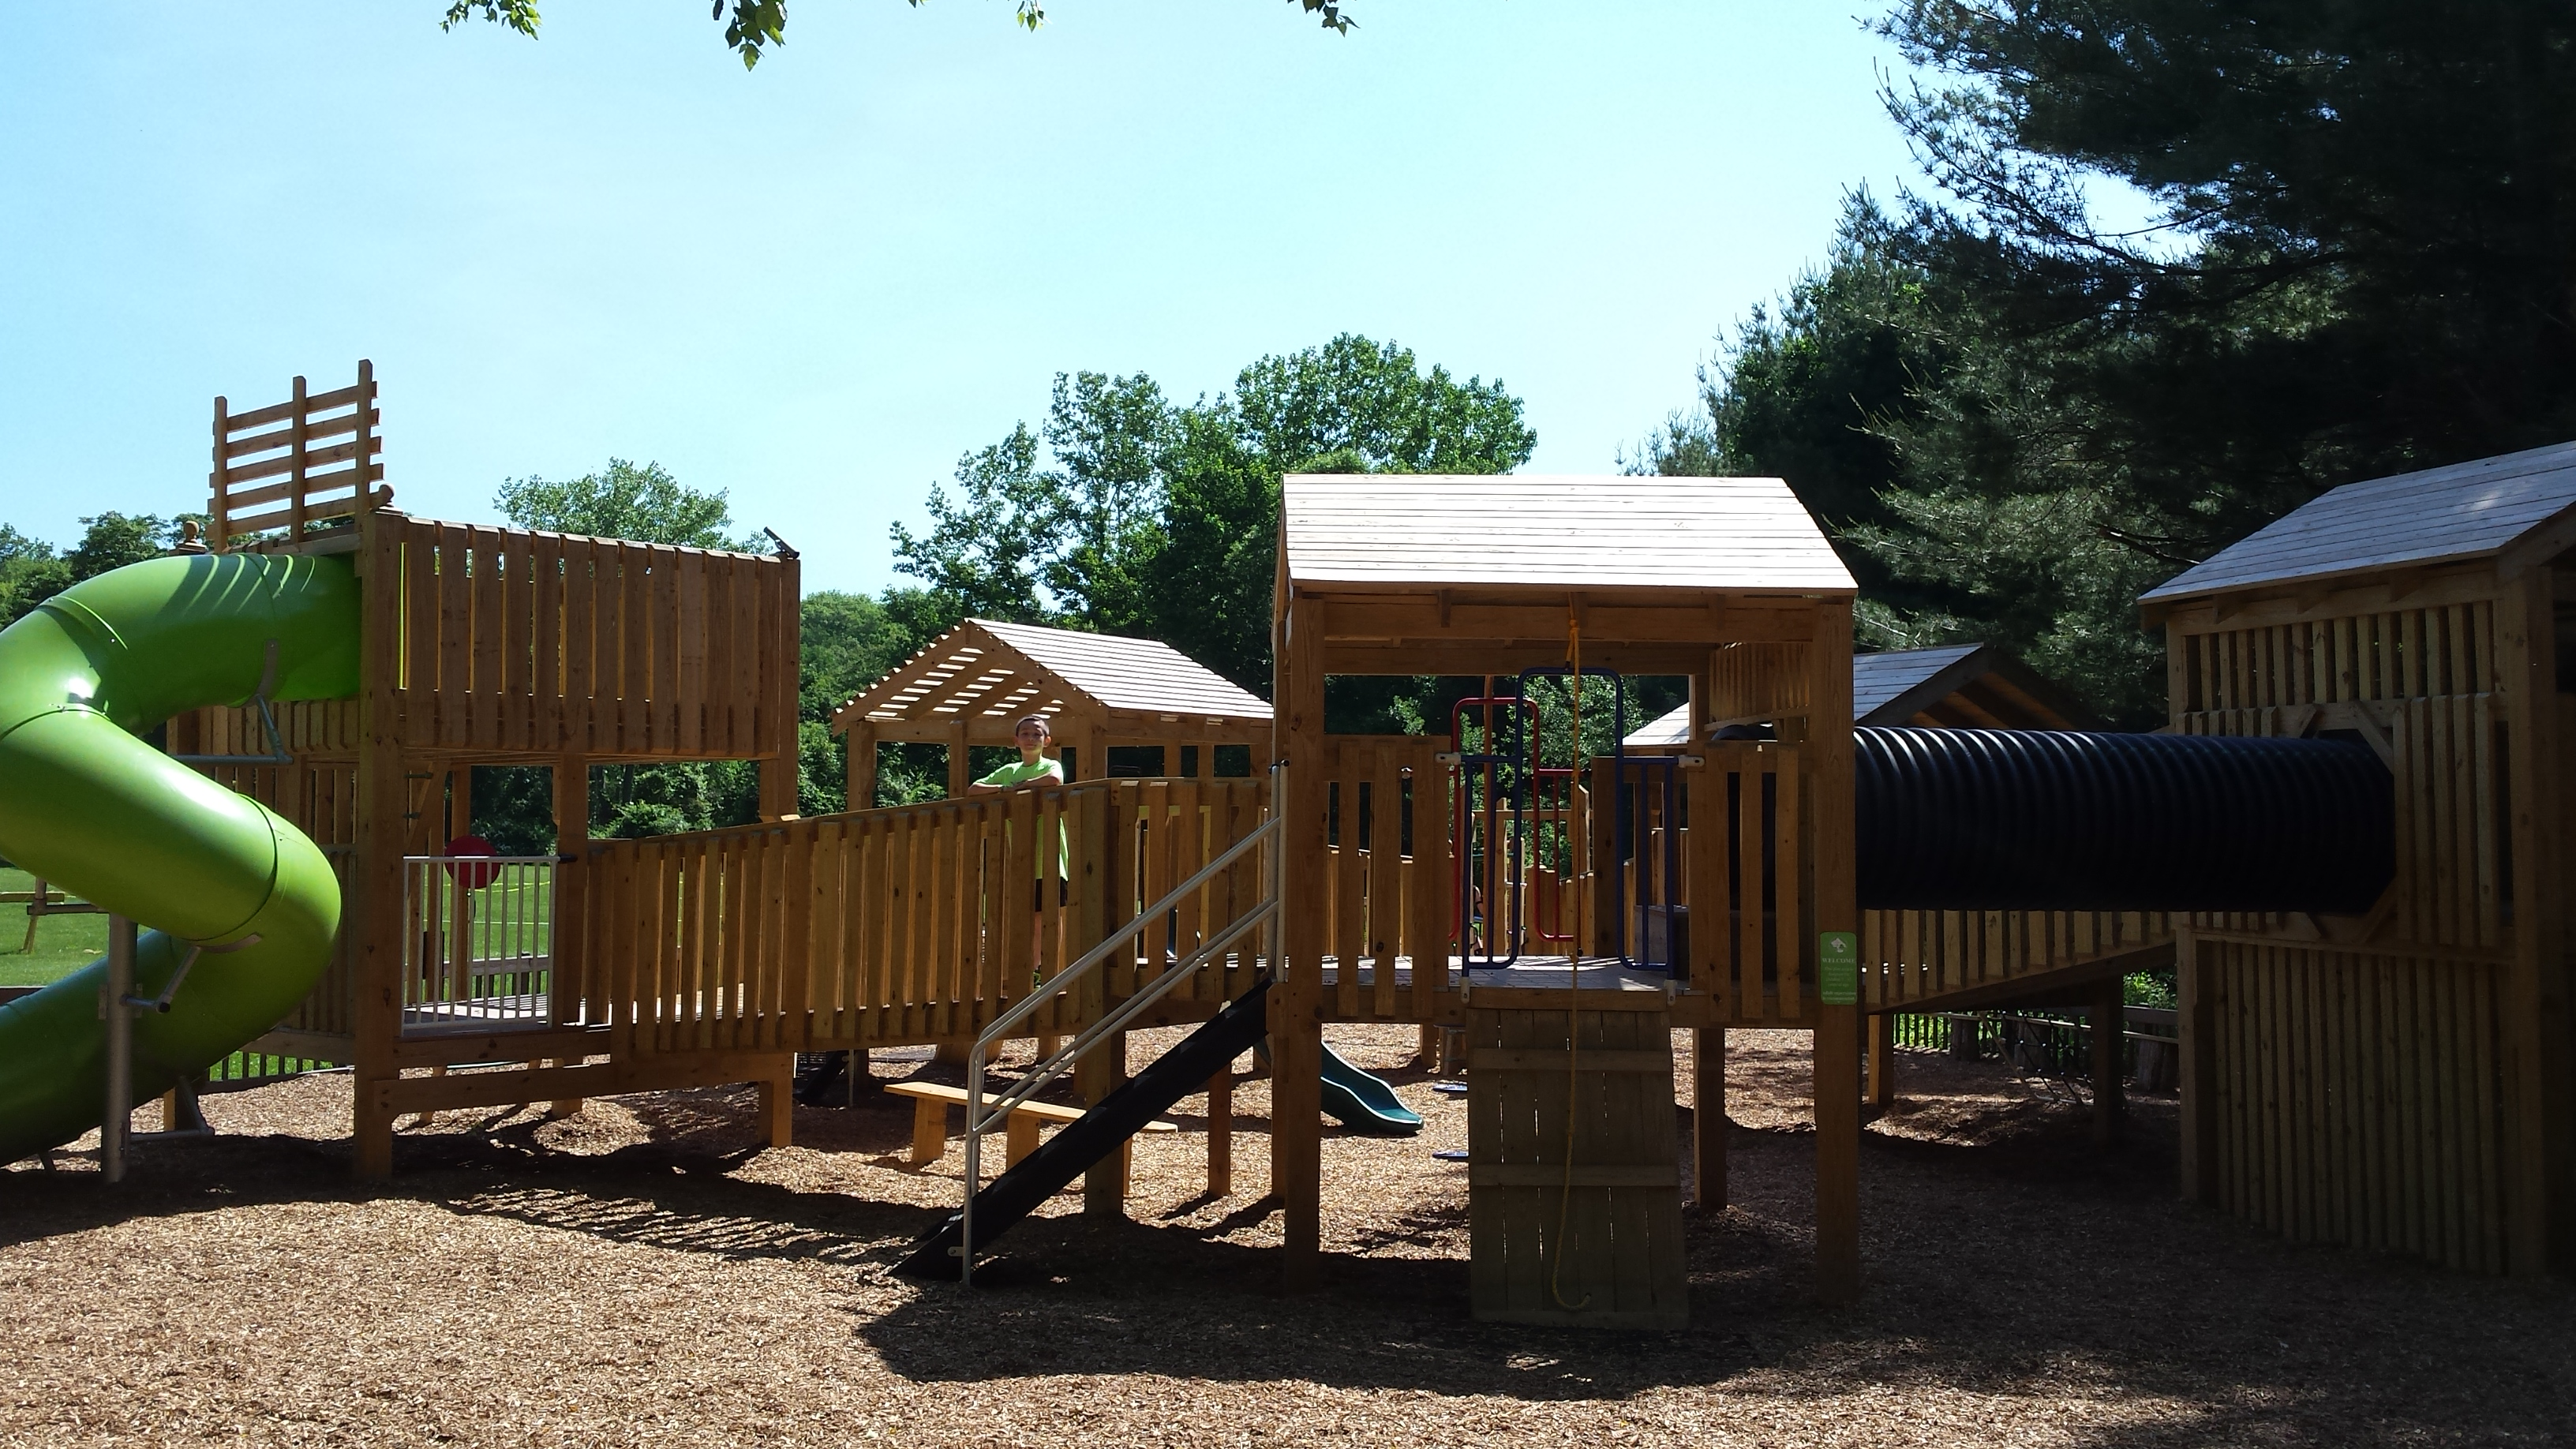 Enjoy our large, wooden playground!